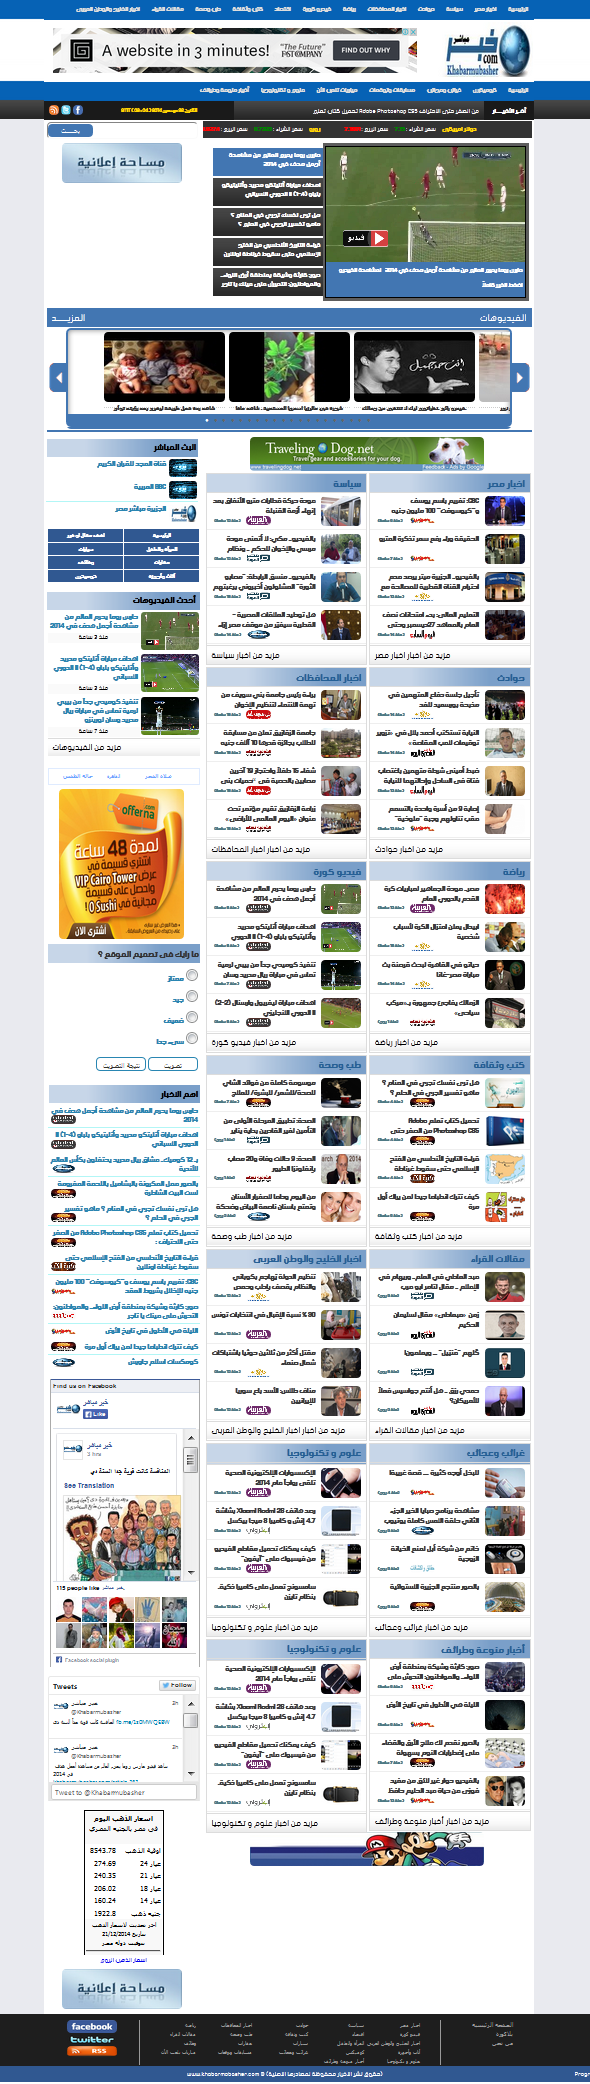 Khabarmubasher News Website